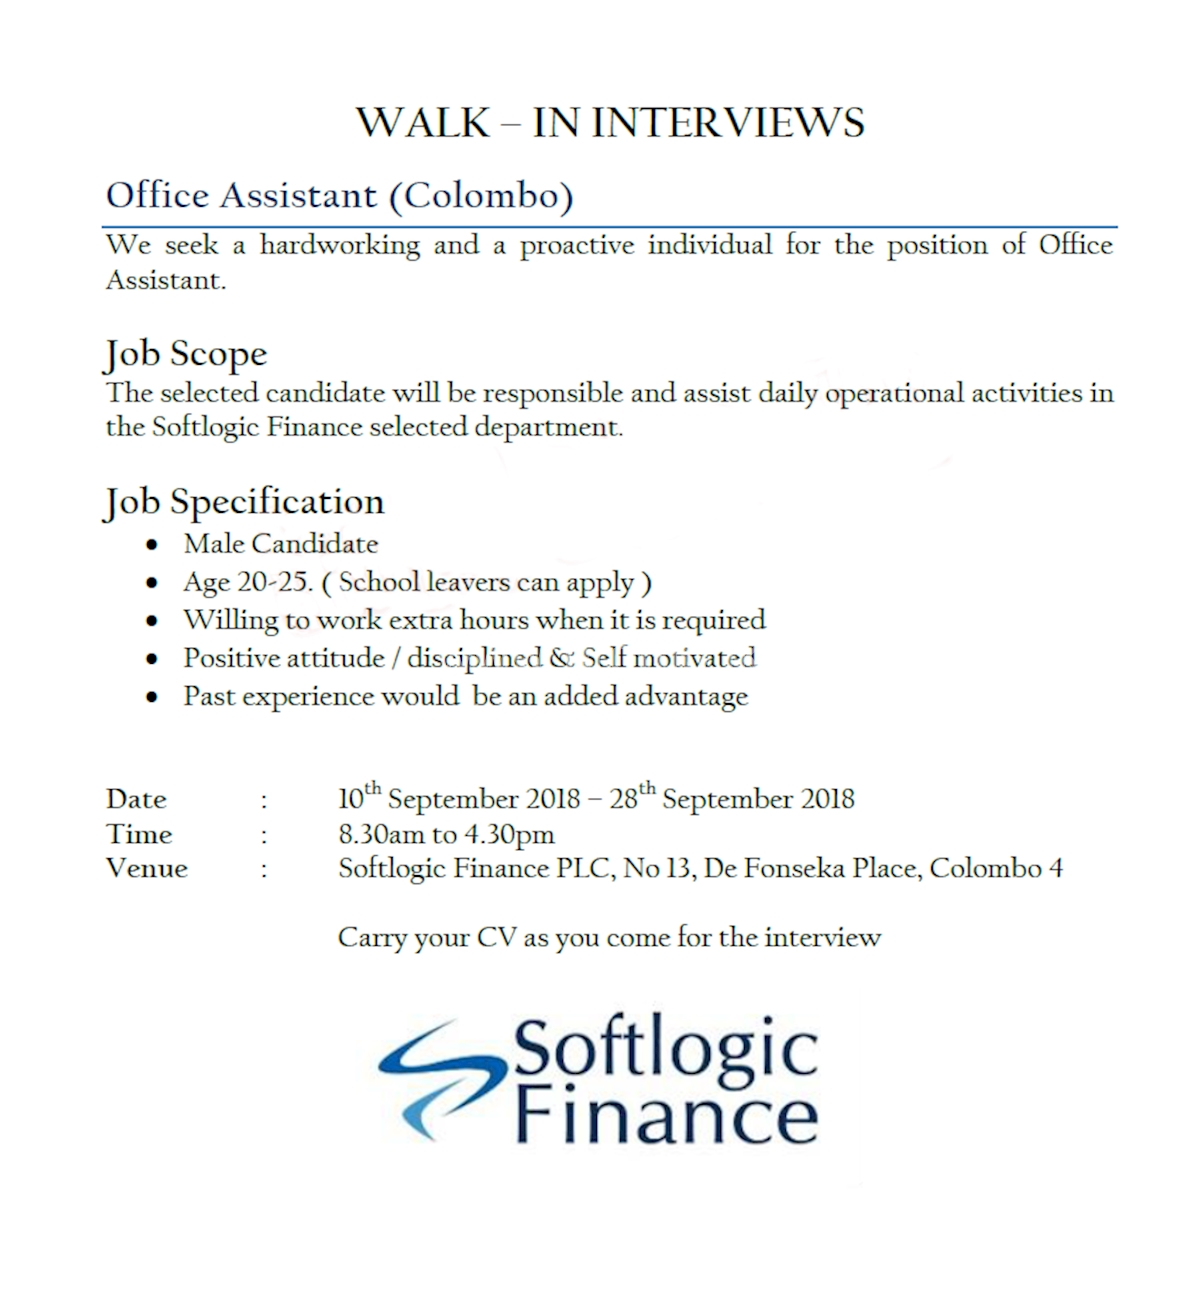 Office Assistant (Colombo) at Softlogic Holdings PLC